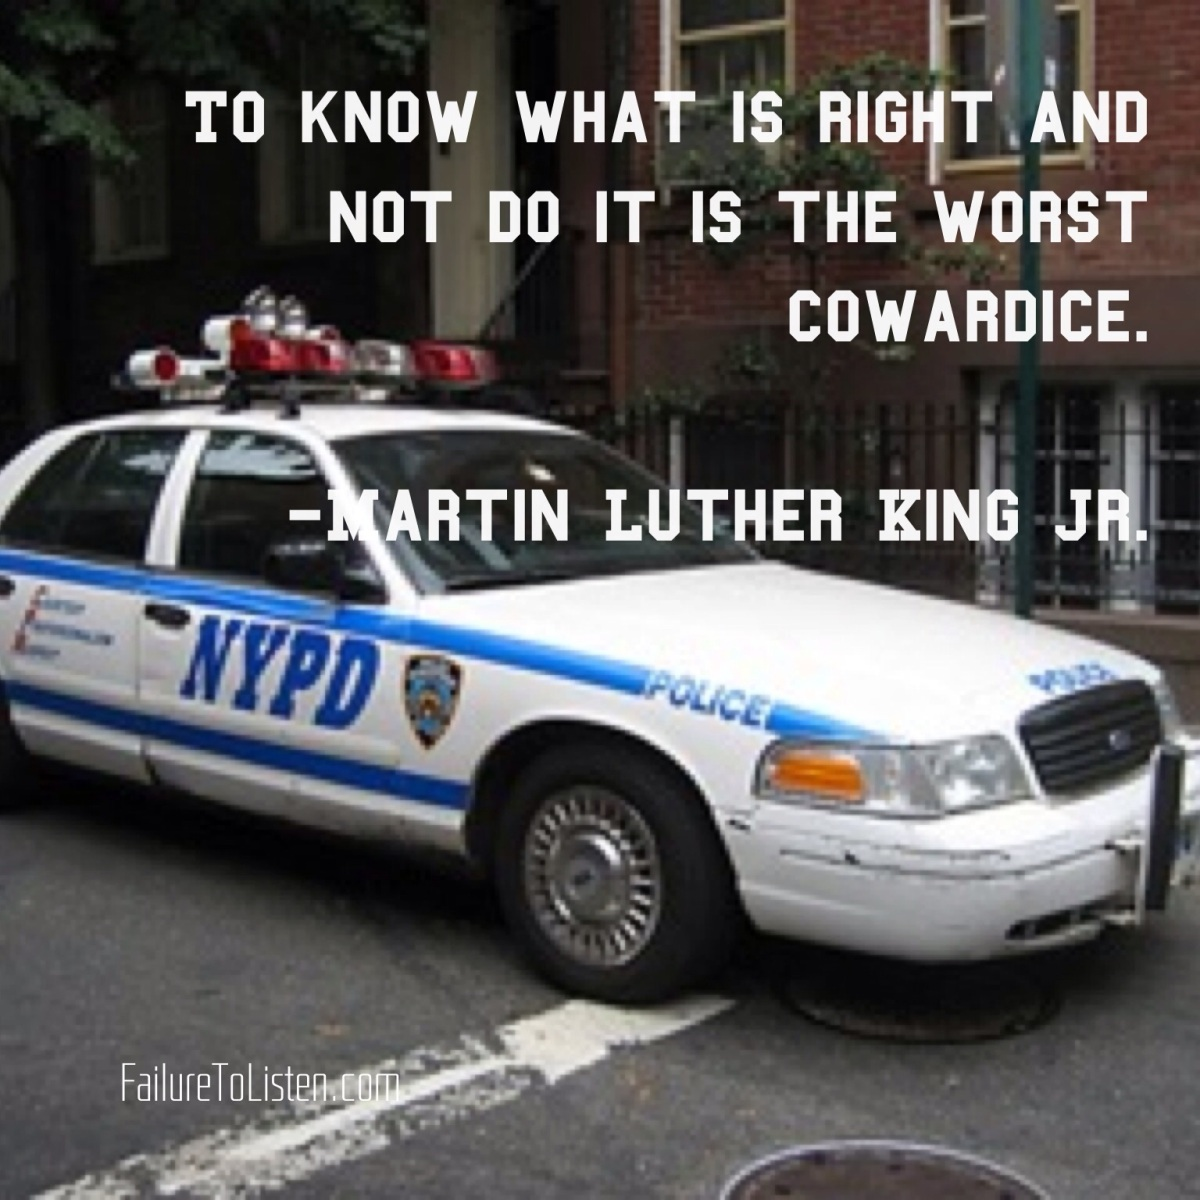 From Martin Luther King Jr. To The NYPD : JUSTICE